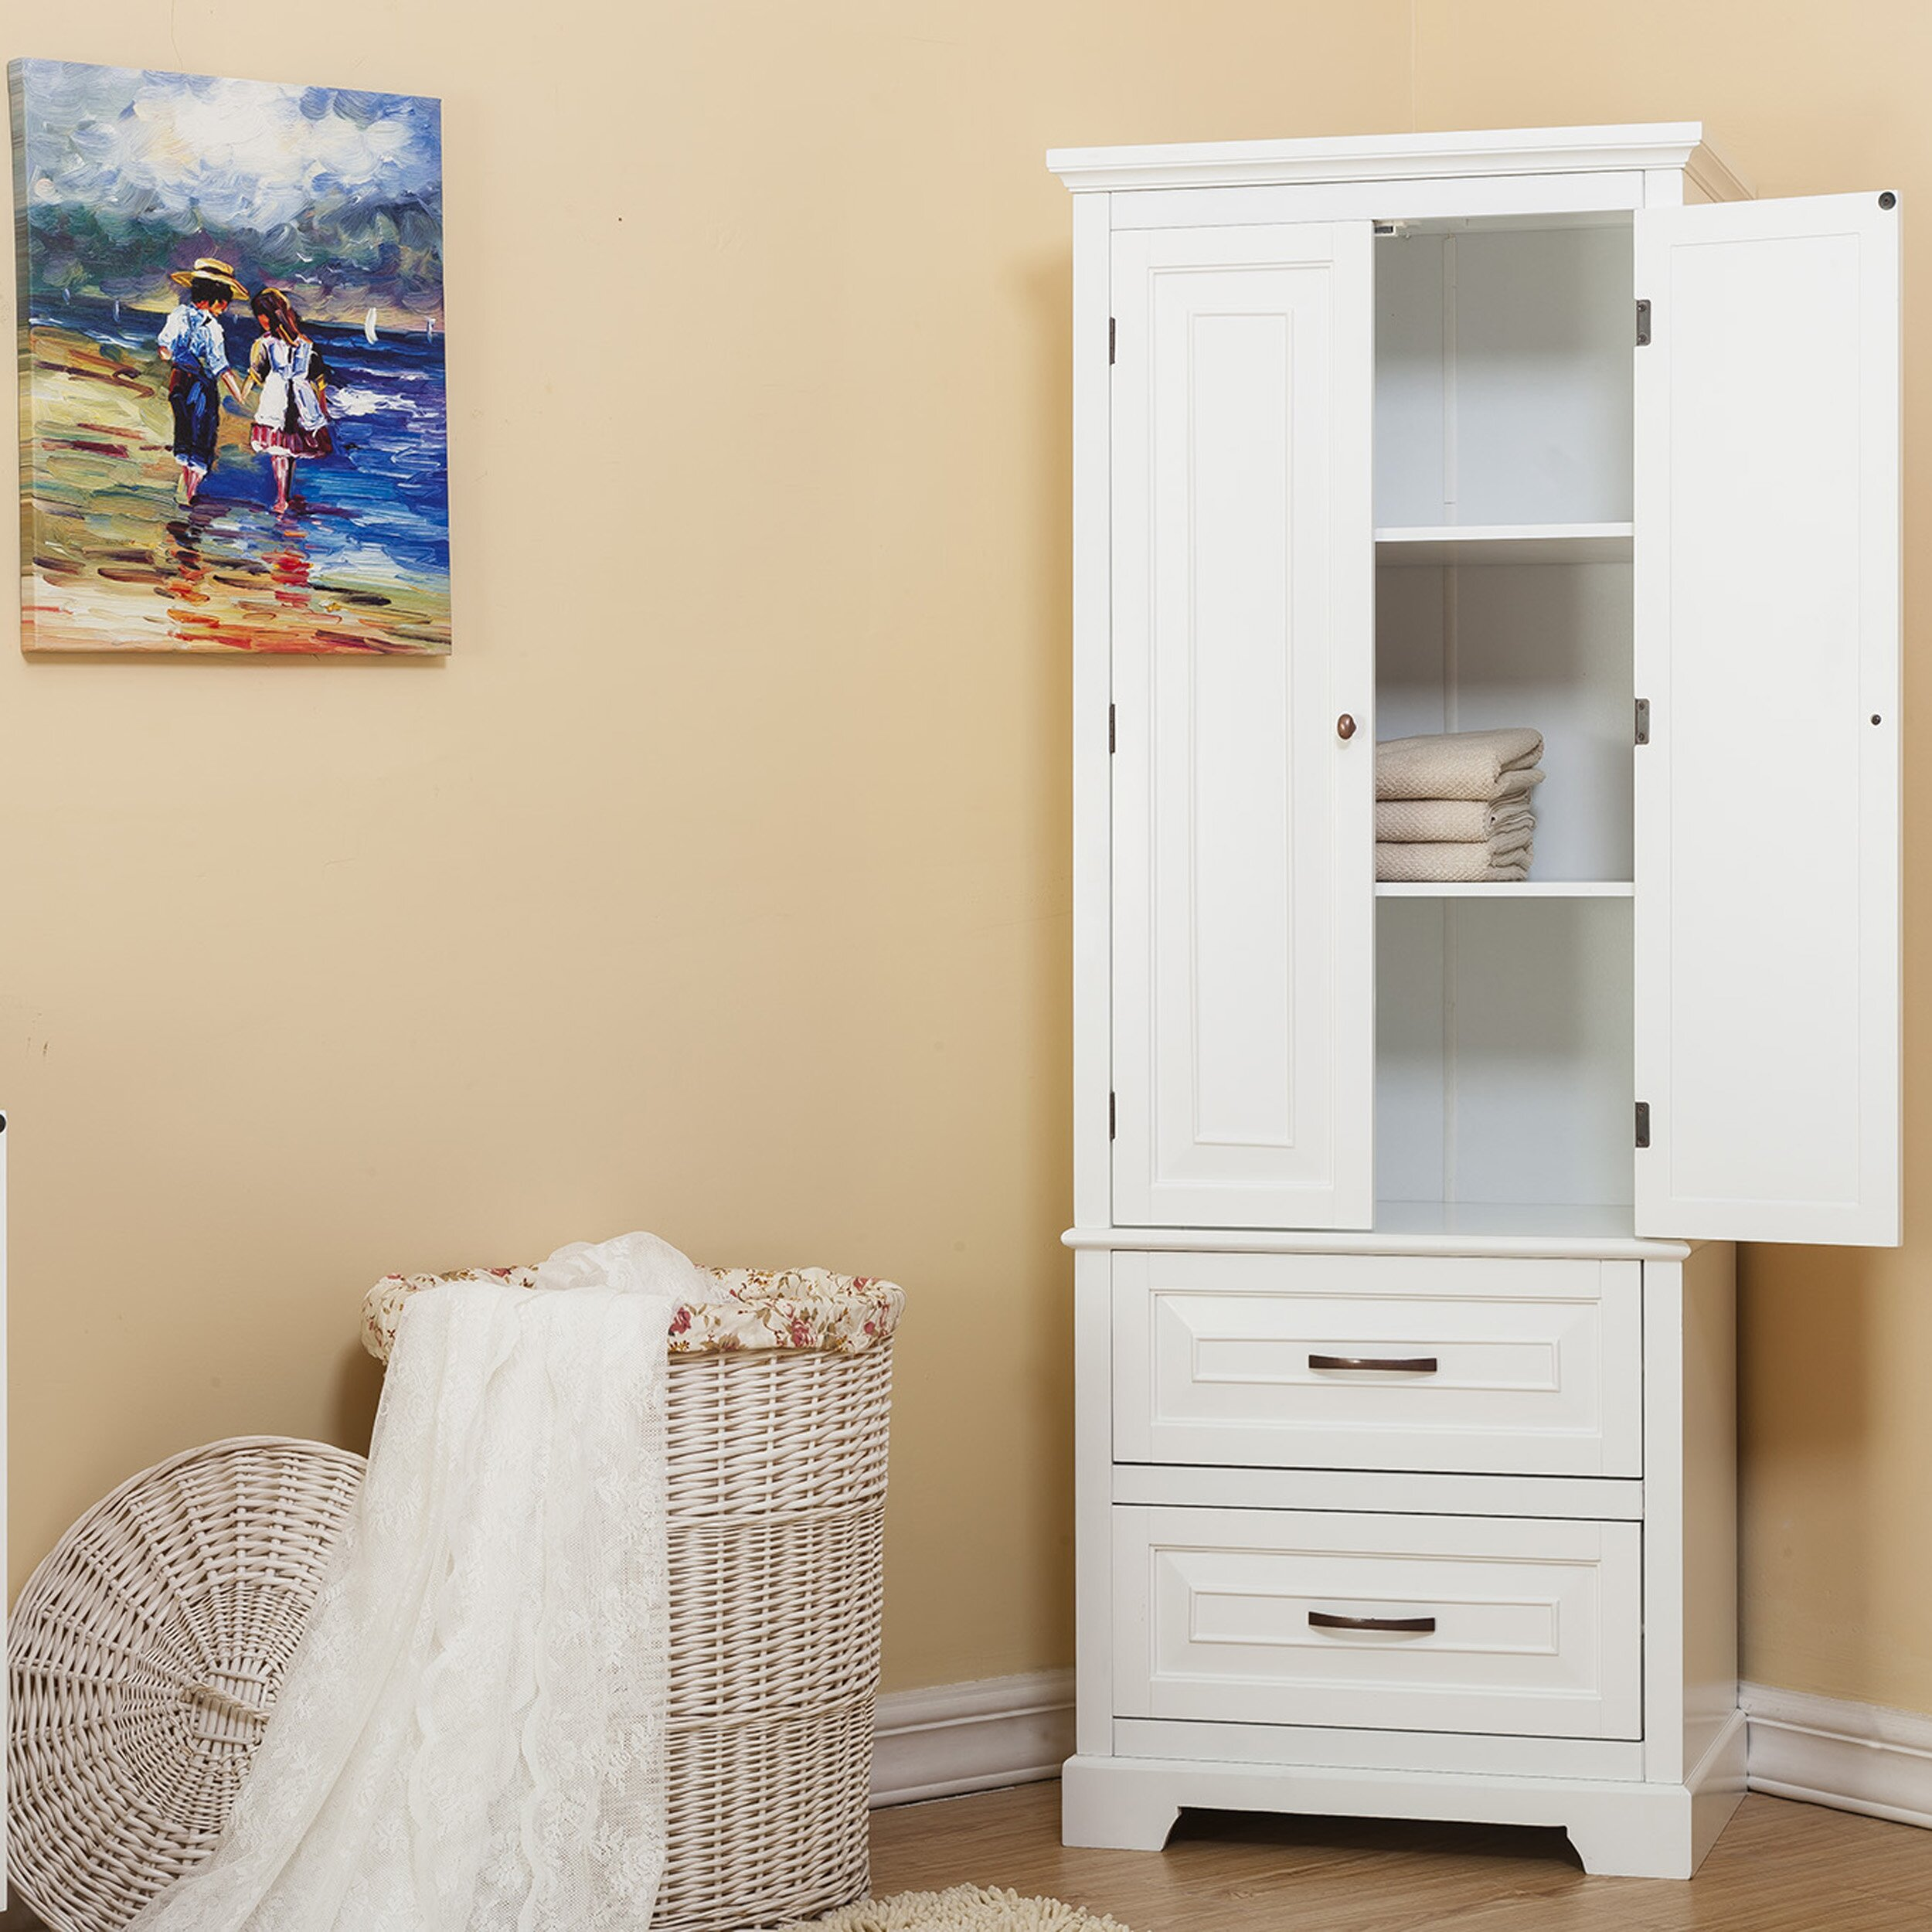 alcott hill prater 24 x 62 free standing cabinet. Black Bedroom Furniture Sets. Home Design Ideas